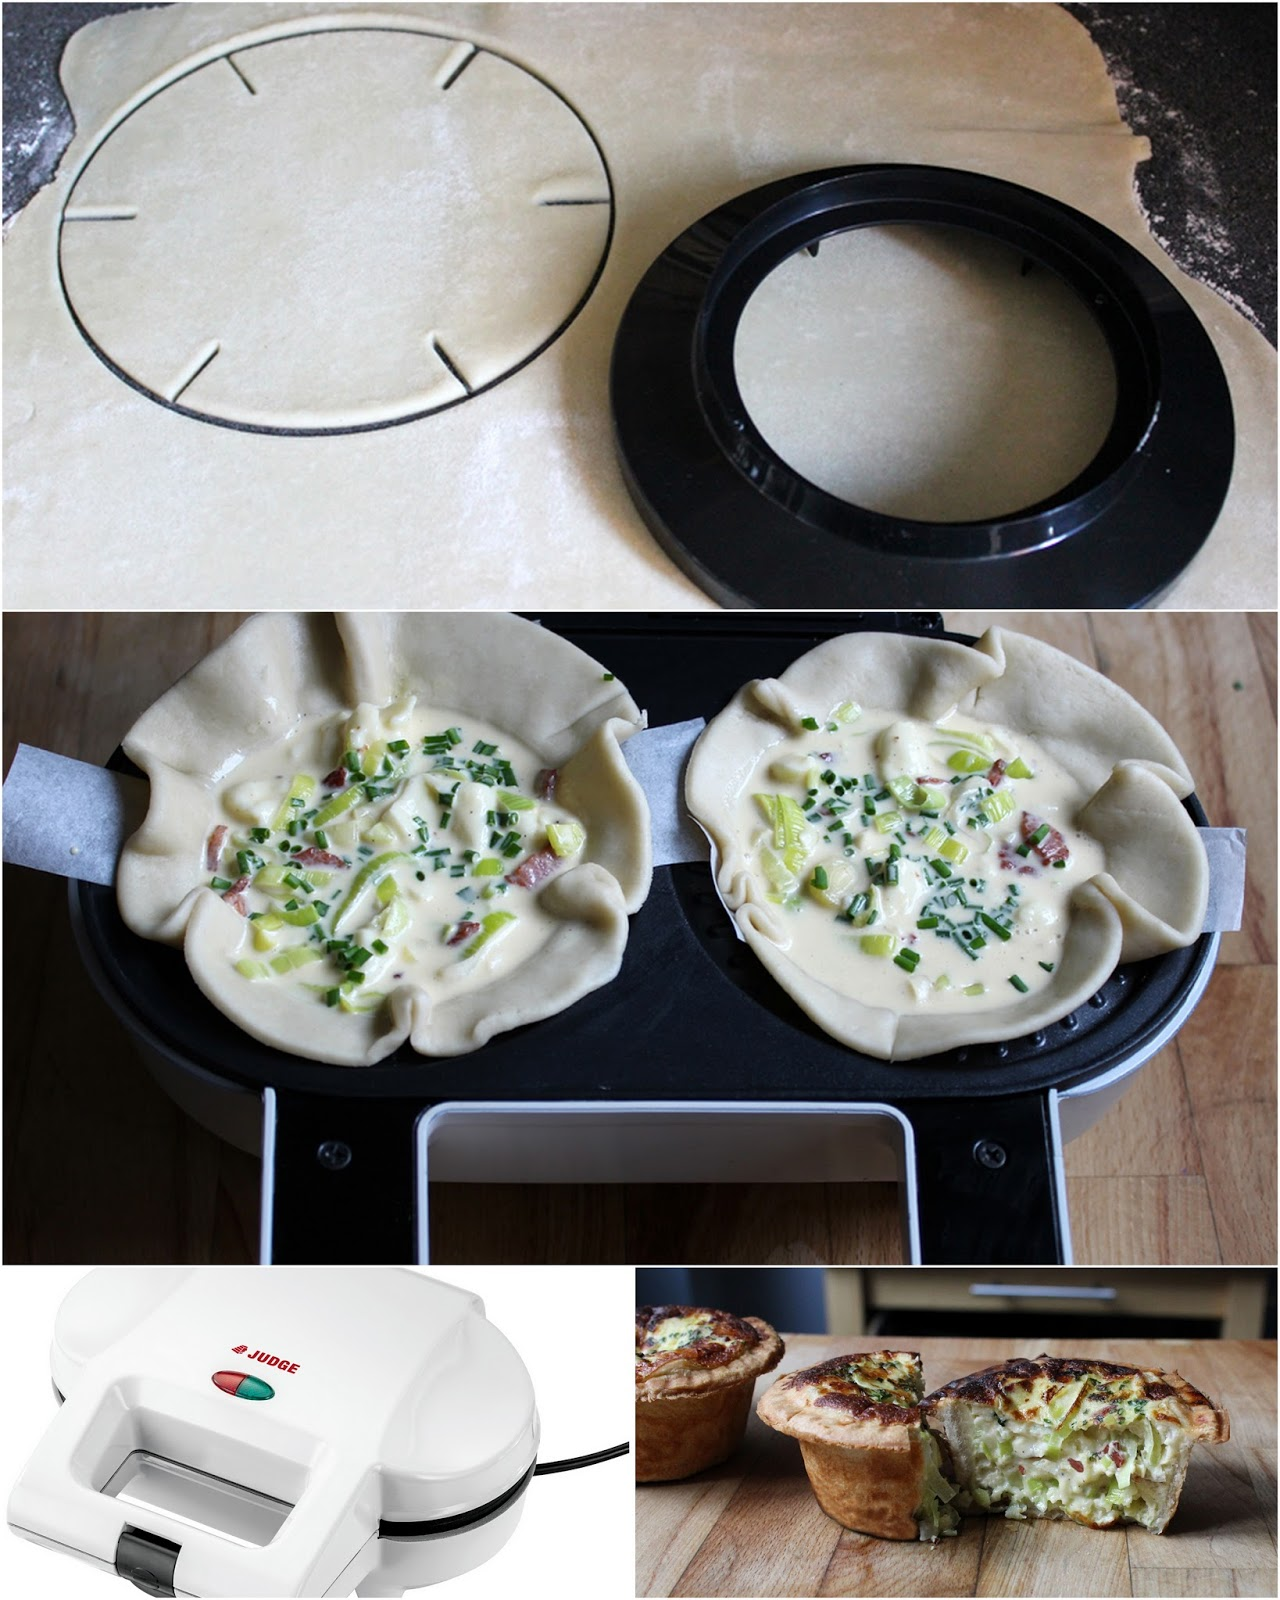 Step by step how to use an electric pie maker